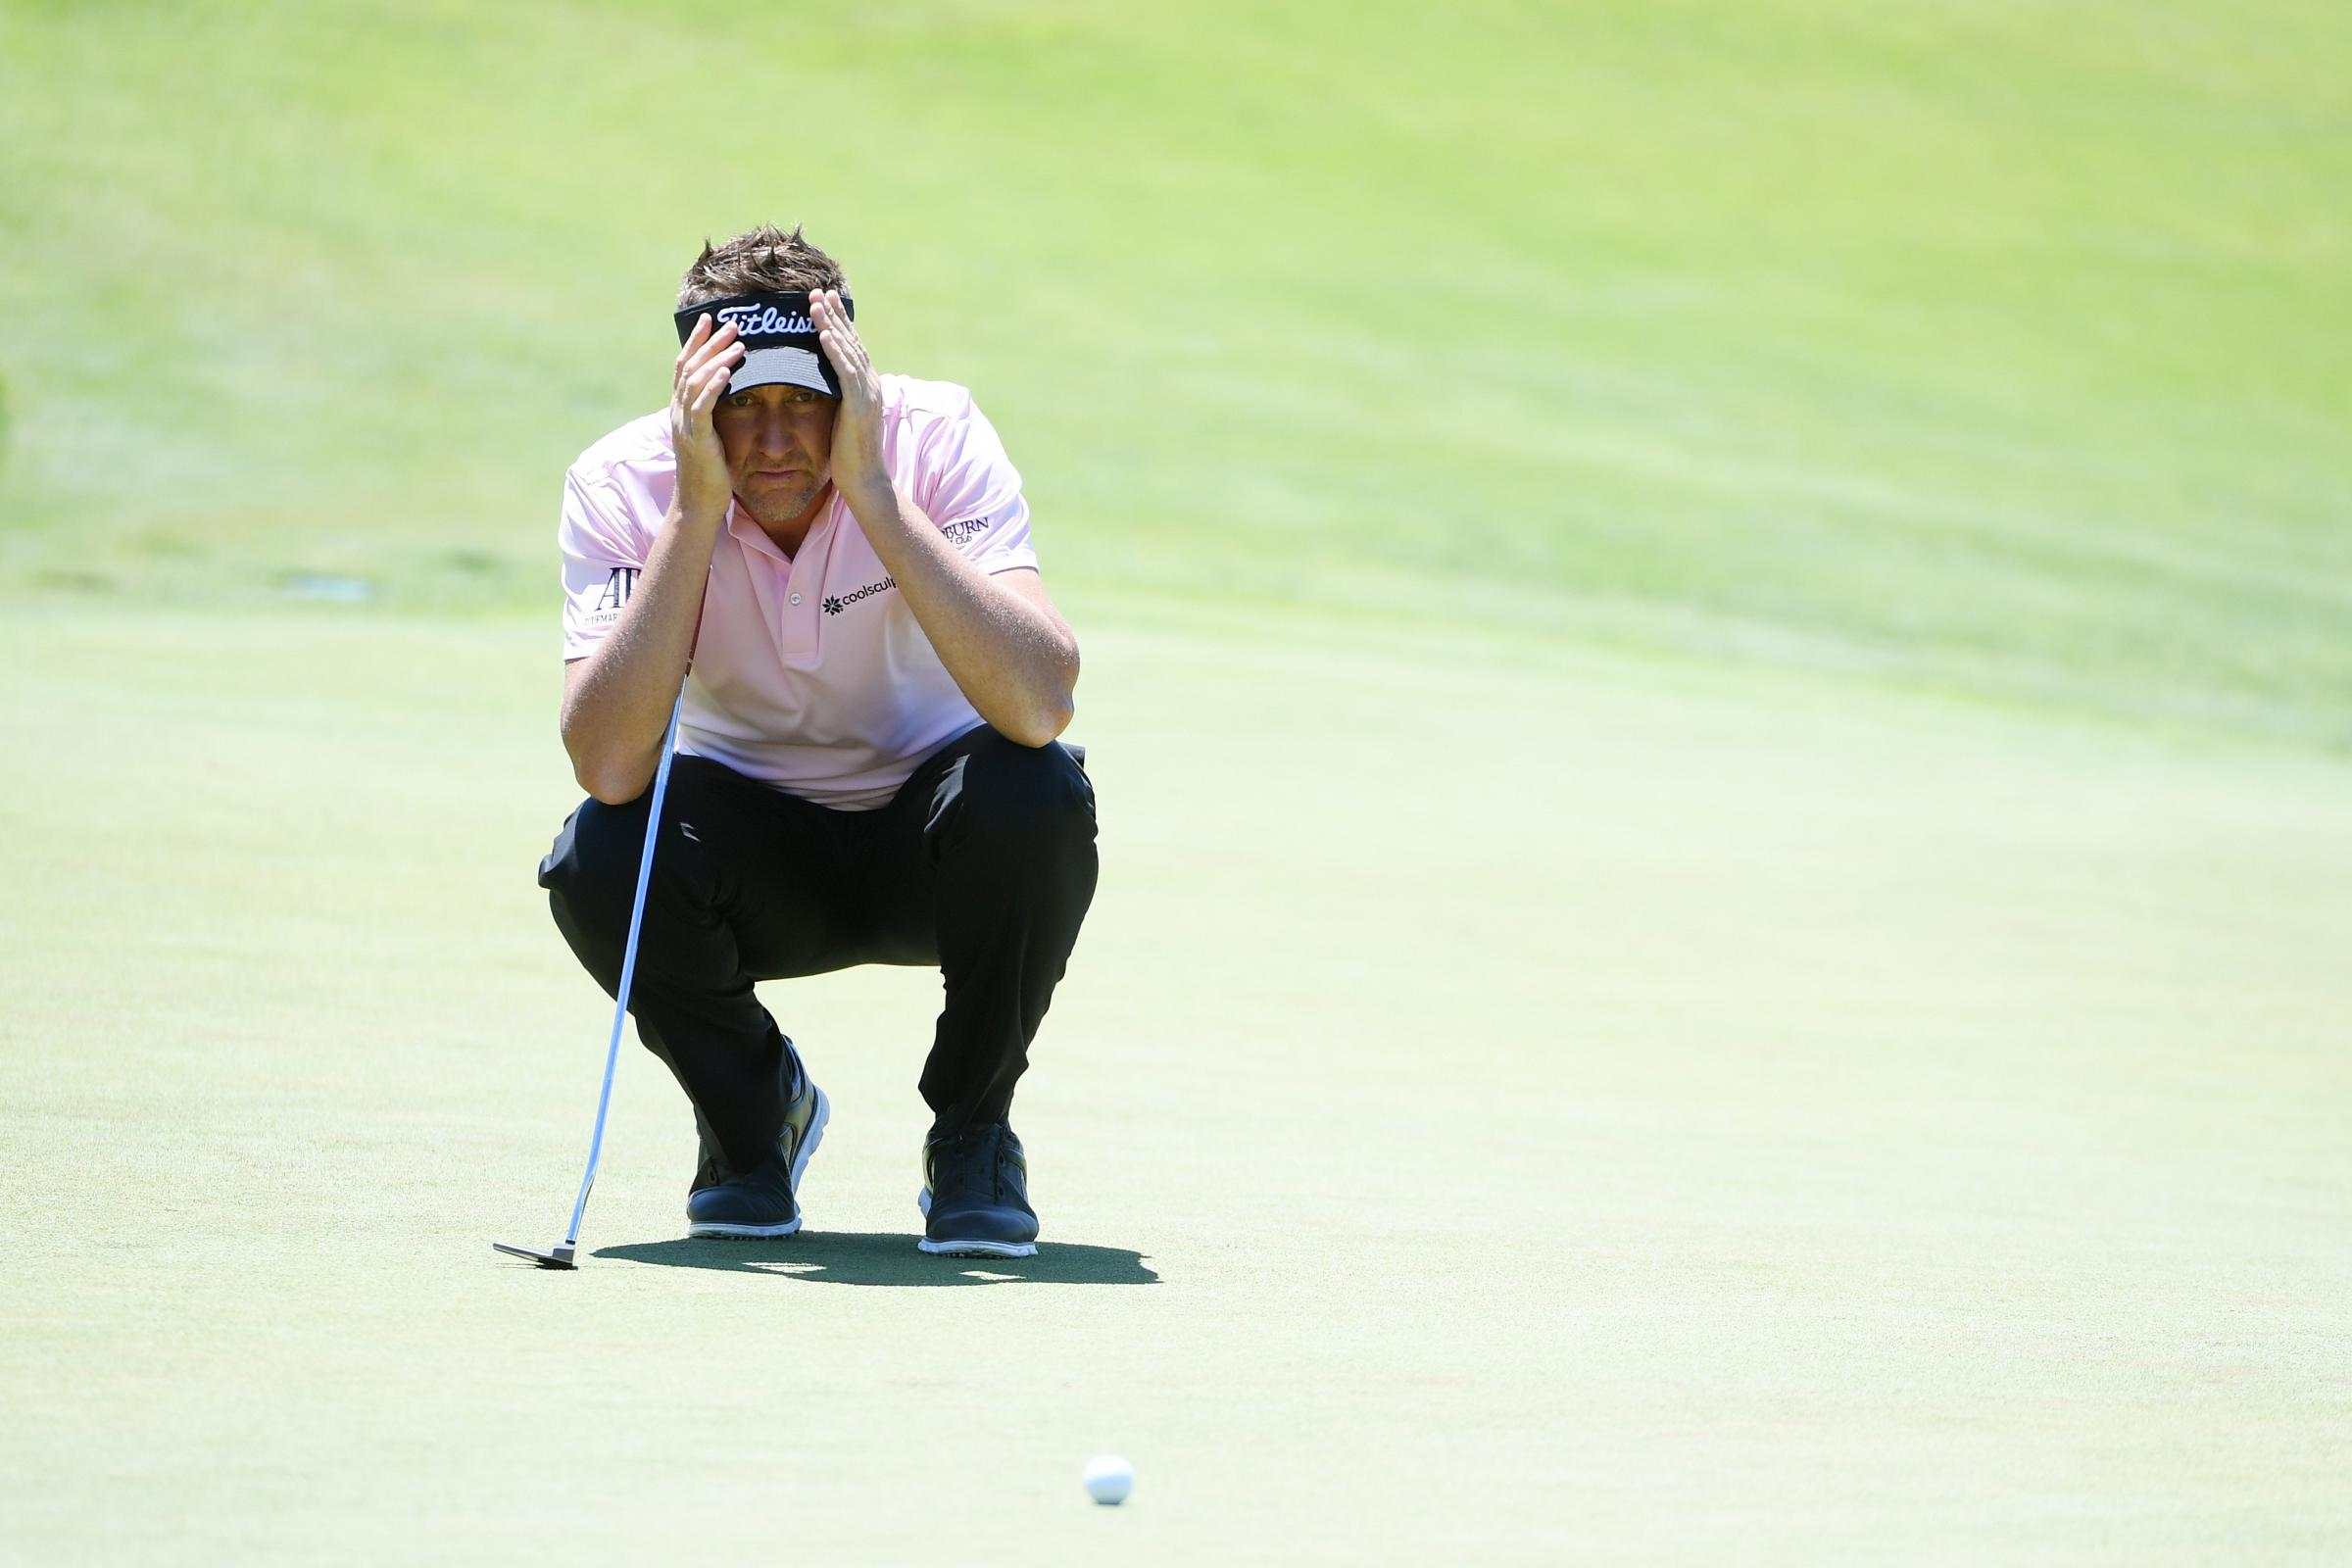 Eye on the ball: Ian Poulter shares the lead at the US Open (Picture: Getty)